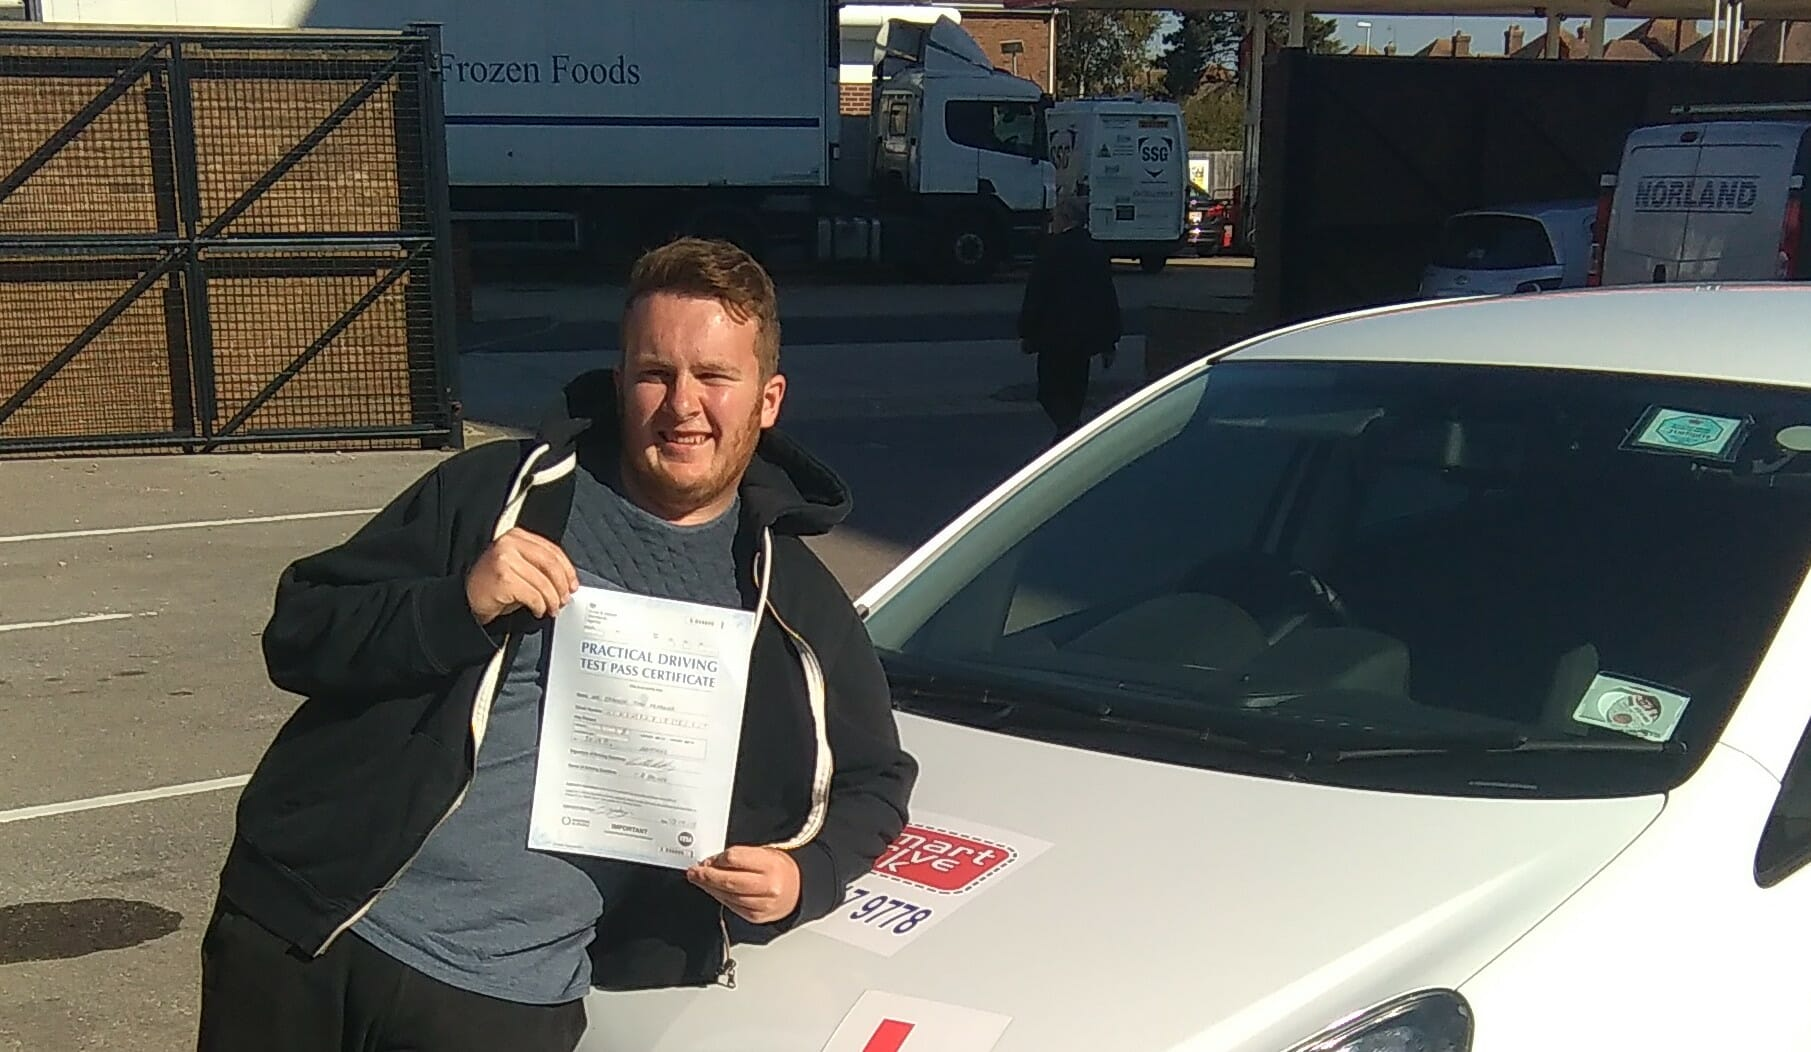 Congratulations to Brandyn from Lancing